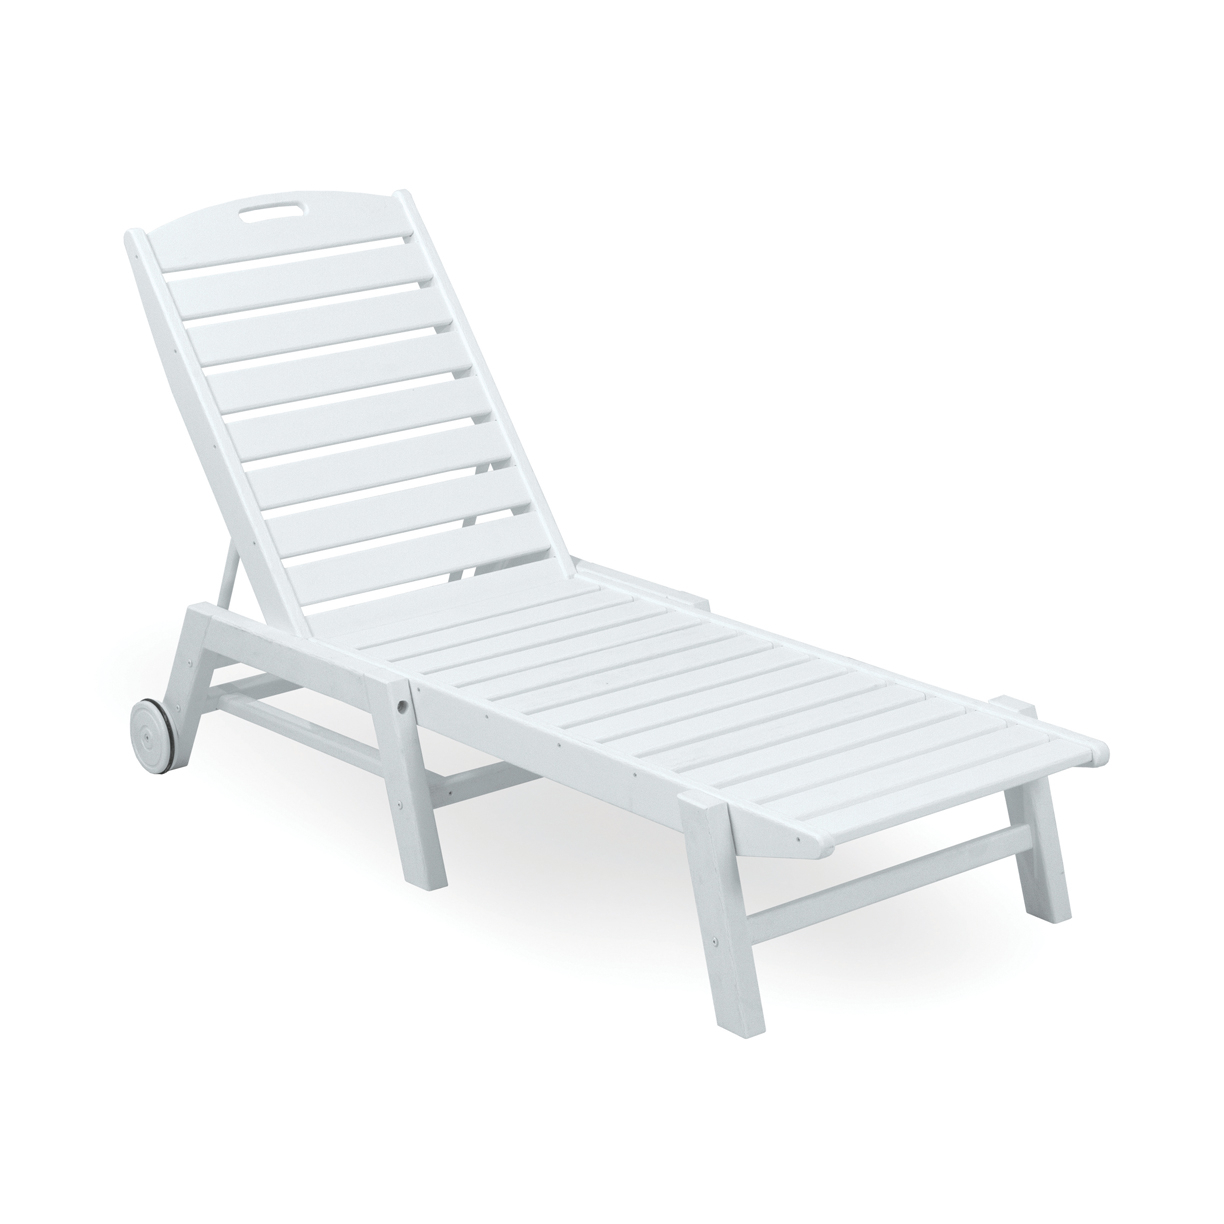 Most Recently Released Stackable Nautical Outdoor Chaise Lounges Within Polywood Nautical Recycled Plastic Folding Chaise Lounge W/wheels (View 9 of 25)